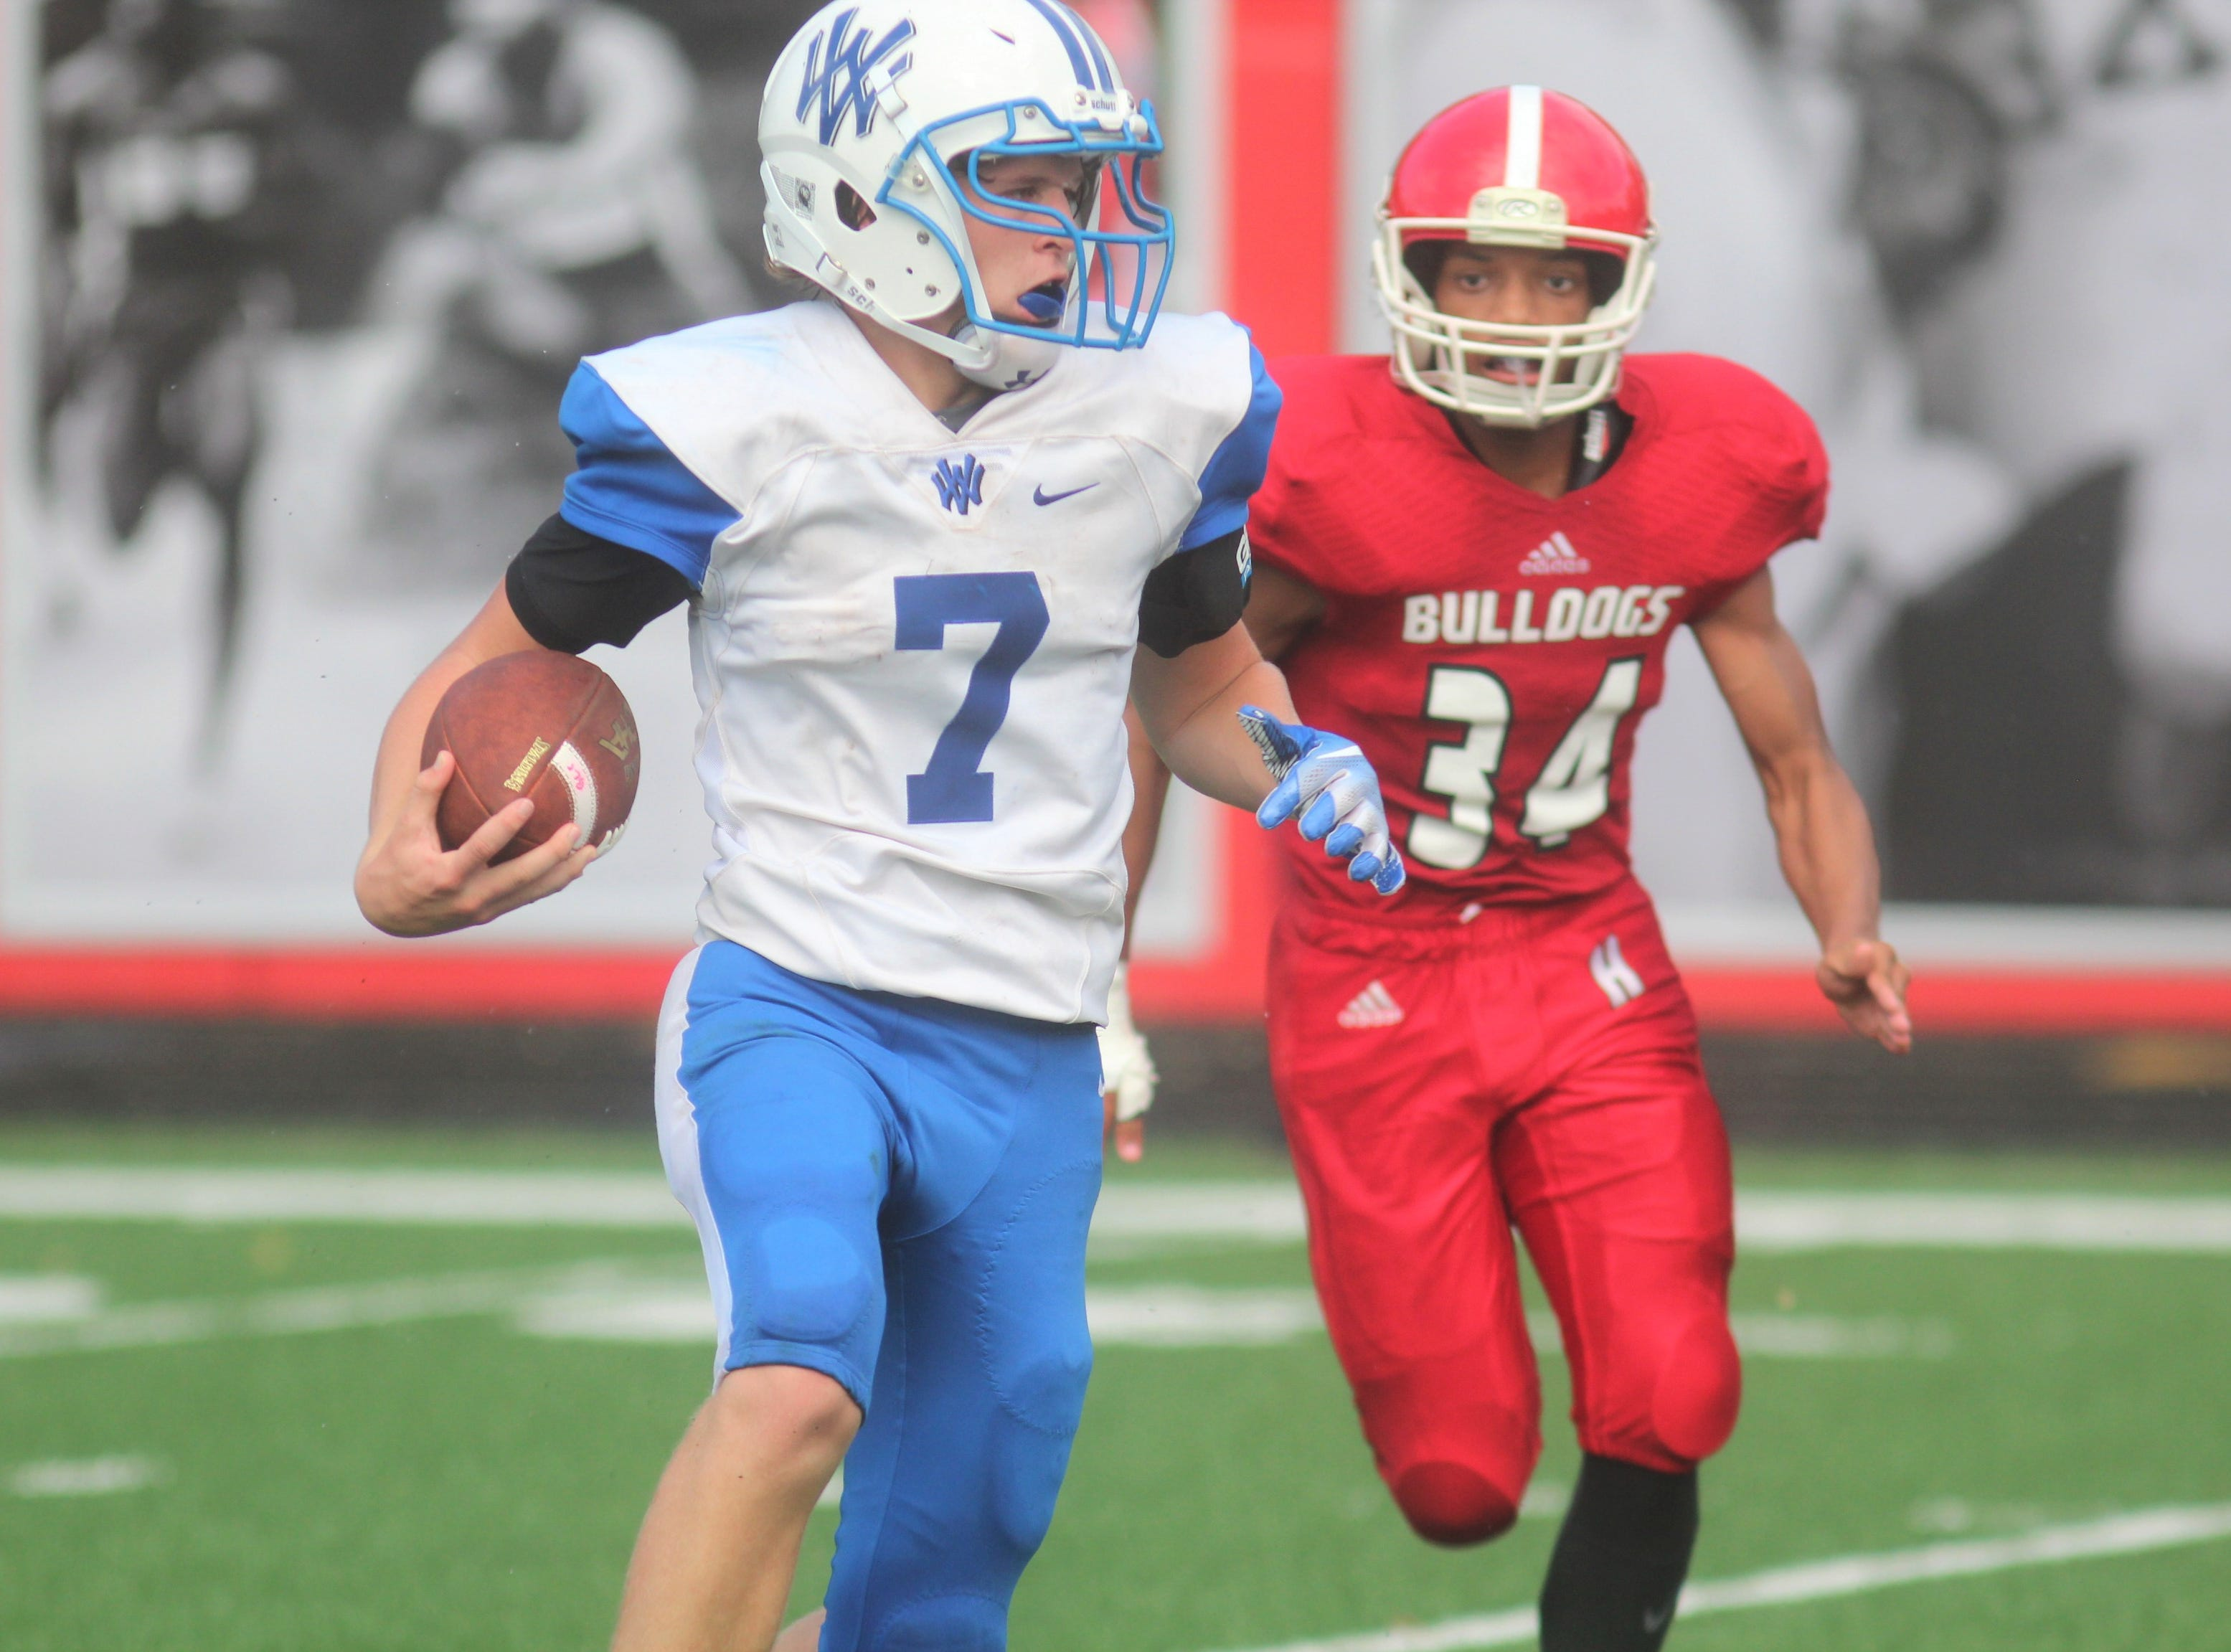 Walton-Verona senior QB Garrett Jones tries to elude Holmes junior Marcus Elmer during Walton-Verona's 48-0 win over Holmes Sept. 1 at Holmes High School. The game concluded on Saturday morning after being suspended at halftime because of weather.